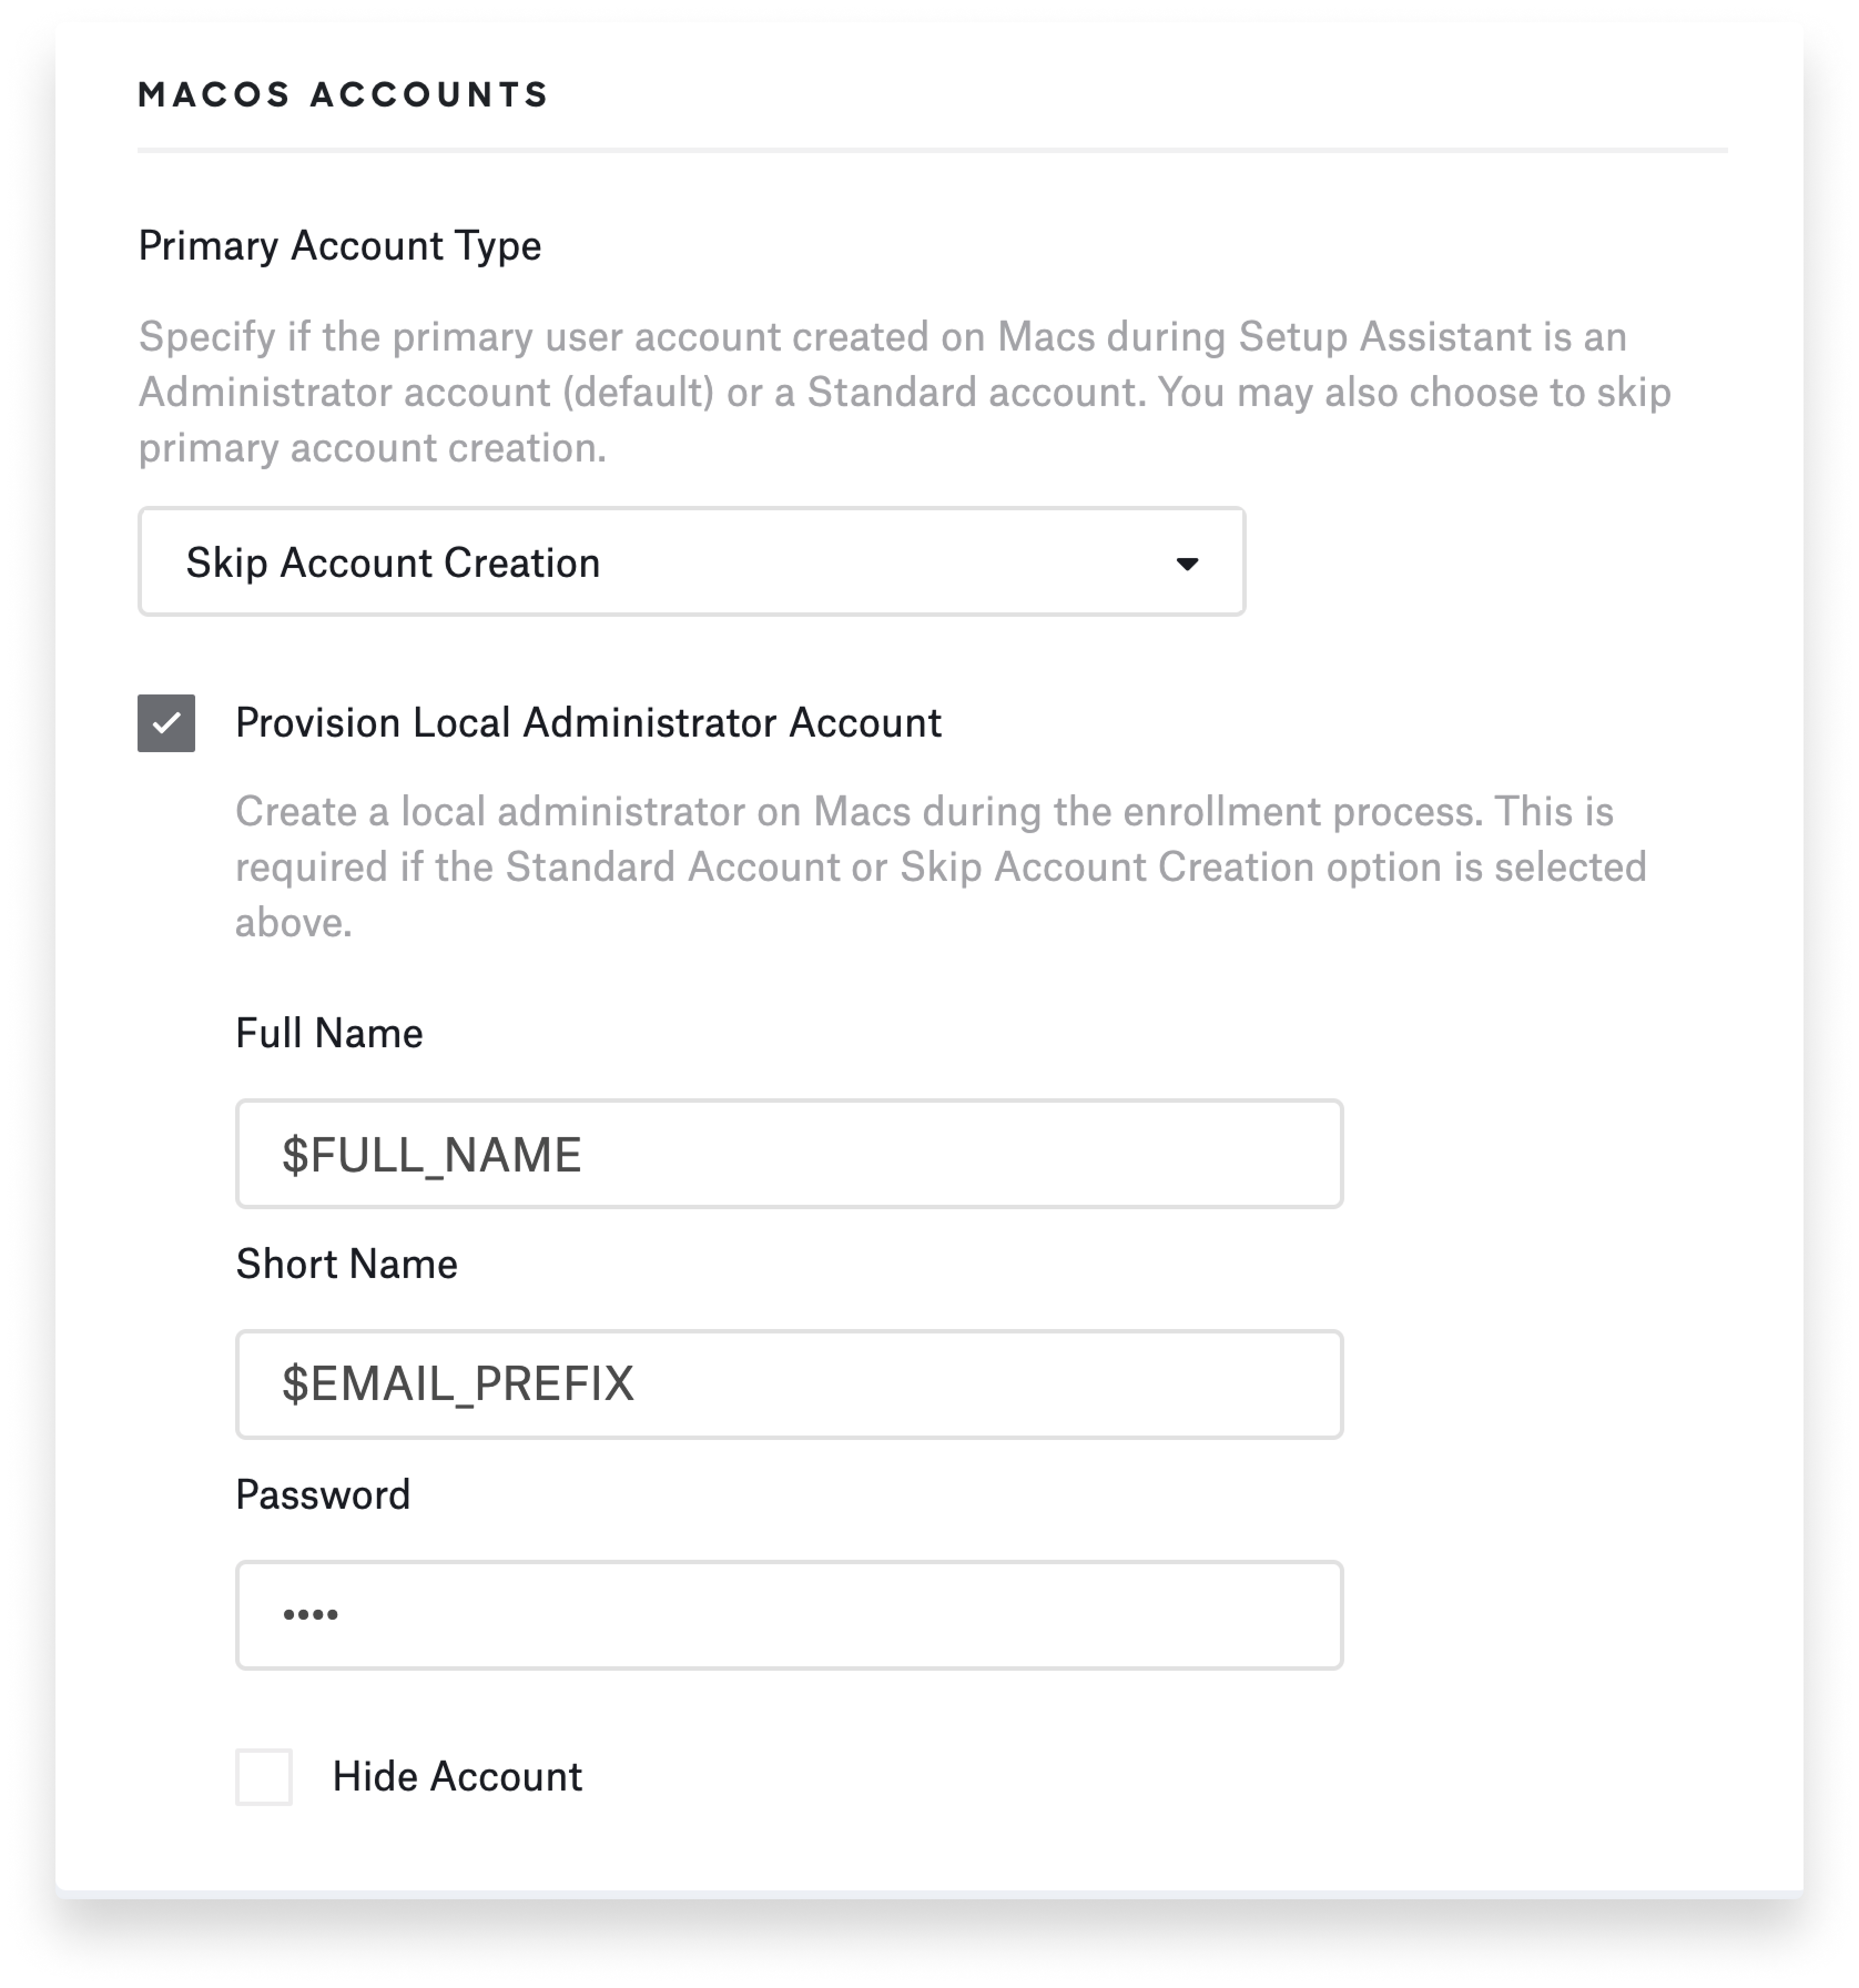 Provision local administrator account with global variables